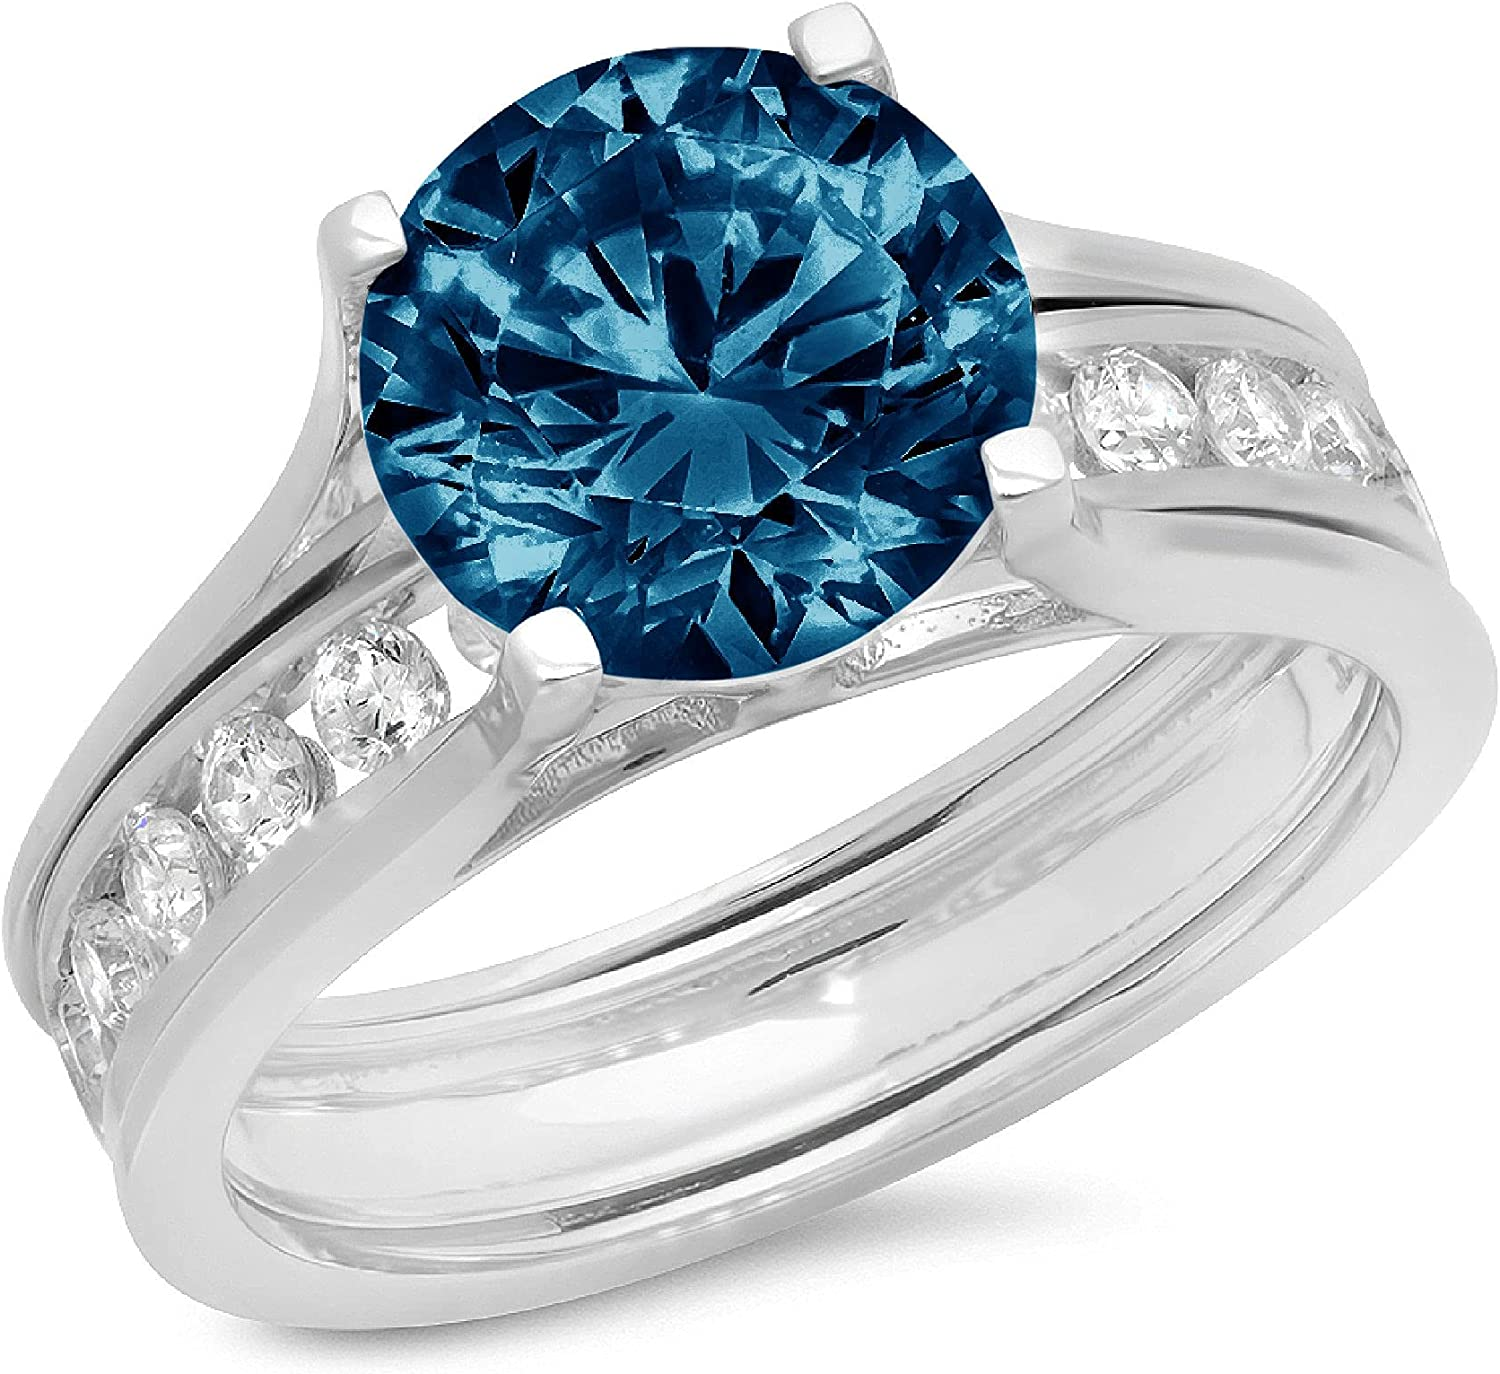 Clara Pucci 2.89ct Round Cut Pave Solitaire Accent Genuine Flawless Natural London Blue Topaz Engagement Promise Statement Anniversary Bridal Wedding Ring Band set Sliding Solid 18K White Gold